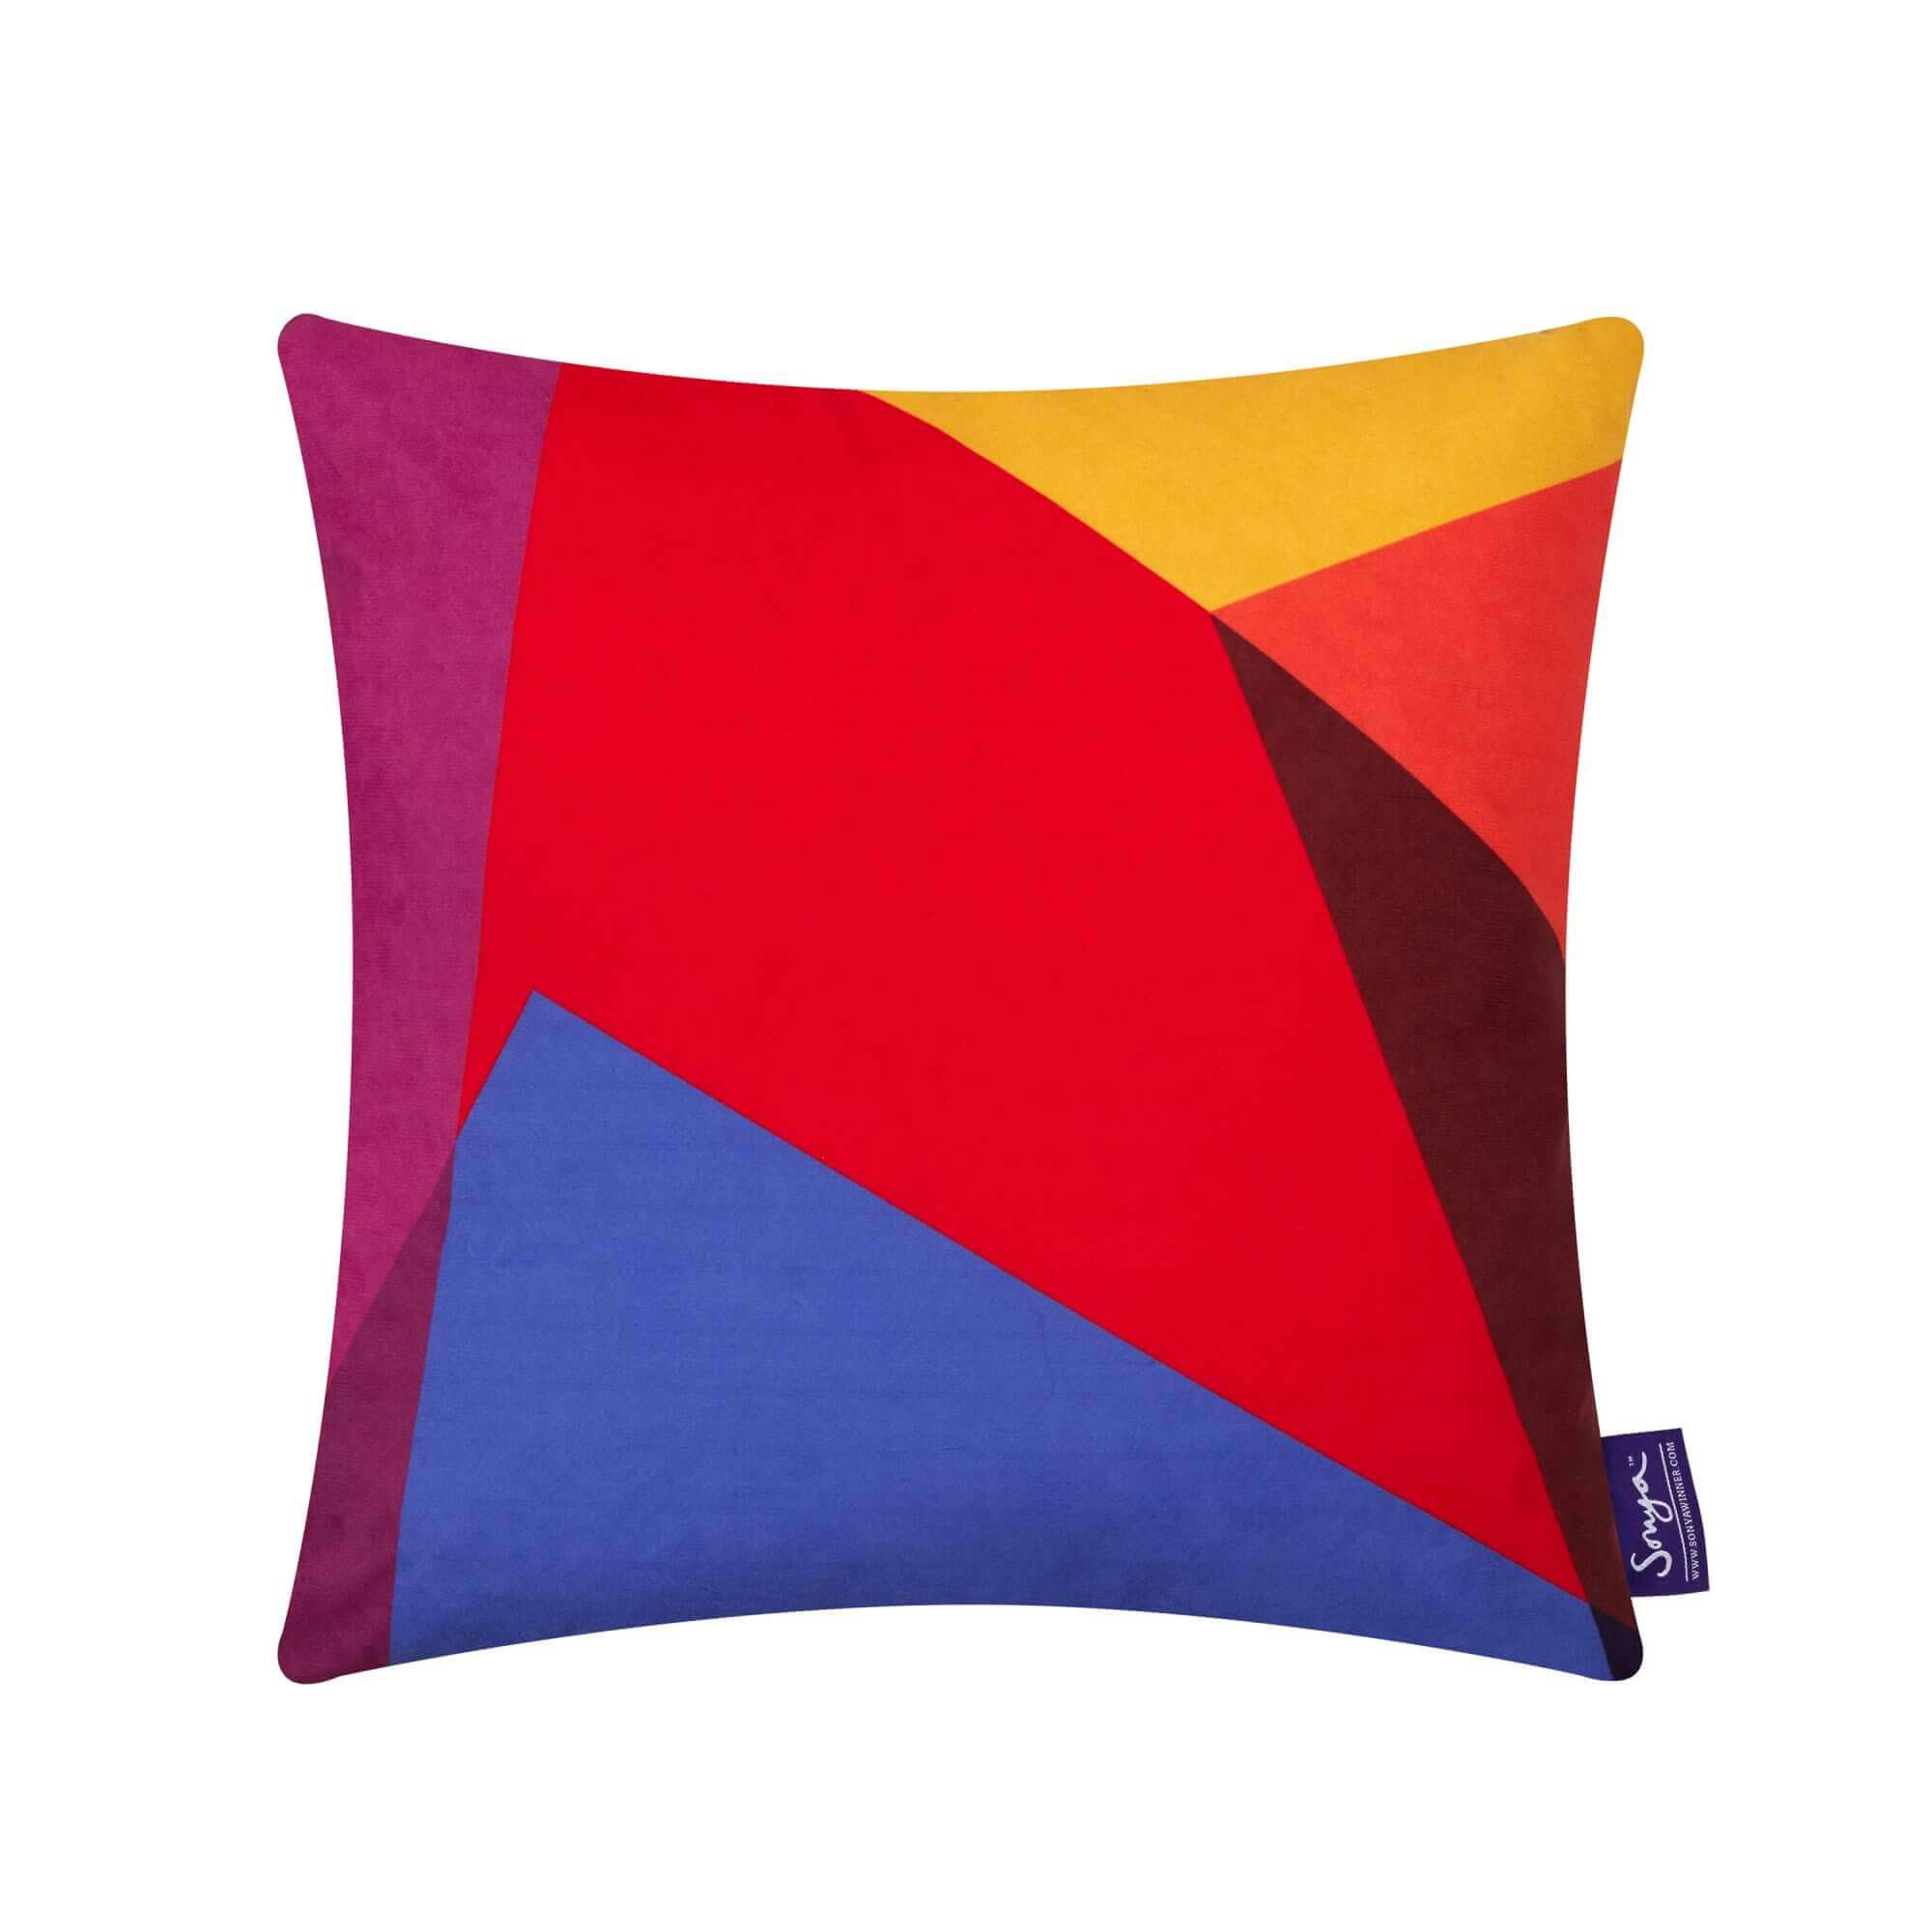 A cropped detail image of the colourful Sonya Winner After Matisse Harlequin cushion, showcasing the bright blue, red, yellow and pink colours, playful pattern and rich texture